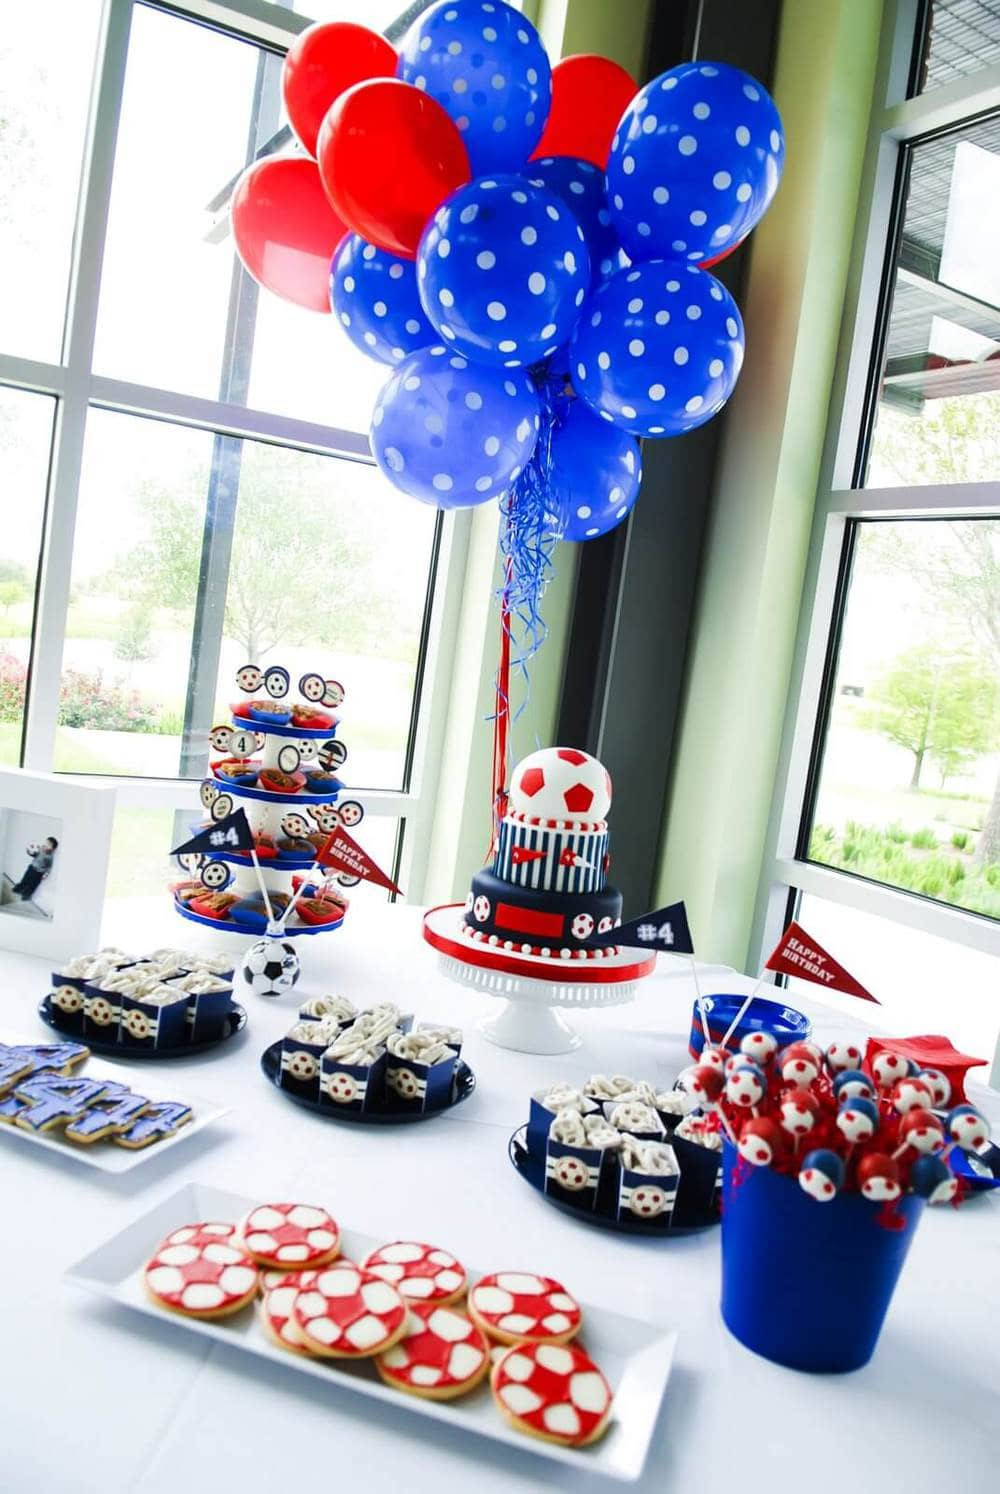 Best ideas about Birthday Party Ideas For Boys . Save or Pin 50 Awesome Boys Birthday Party Ideas I Heart Naptime Now.